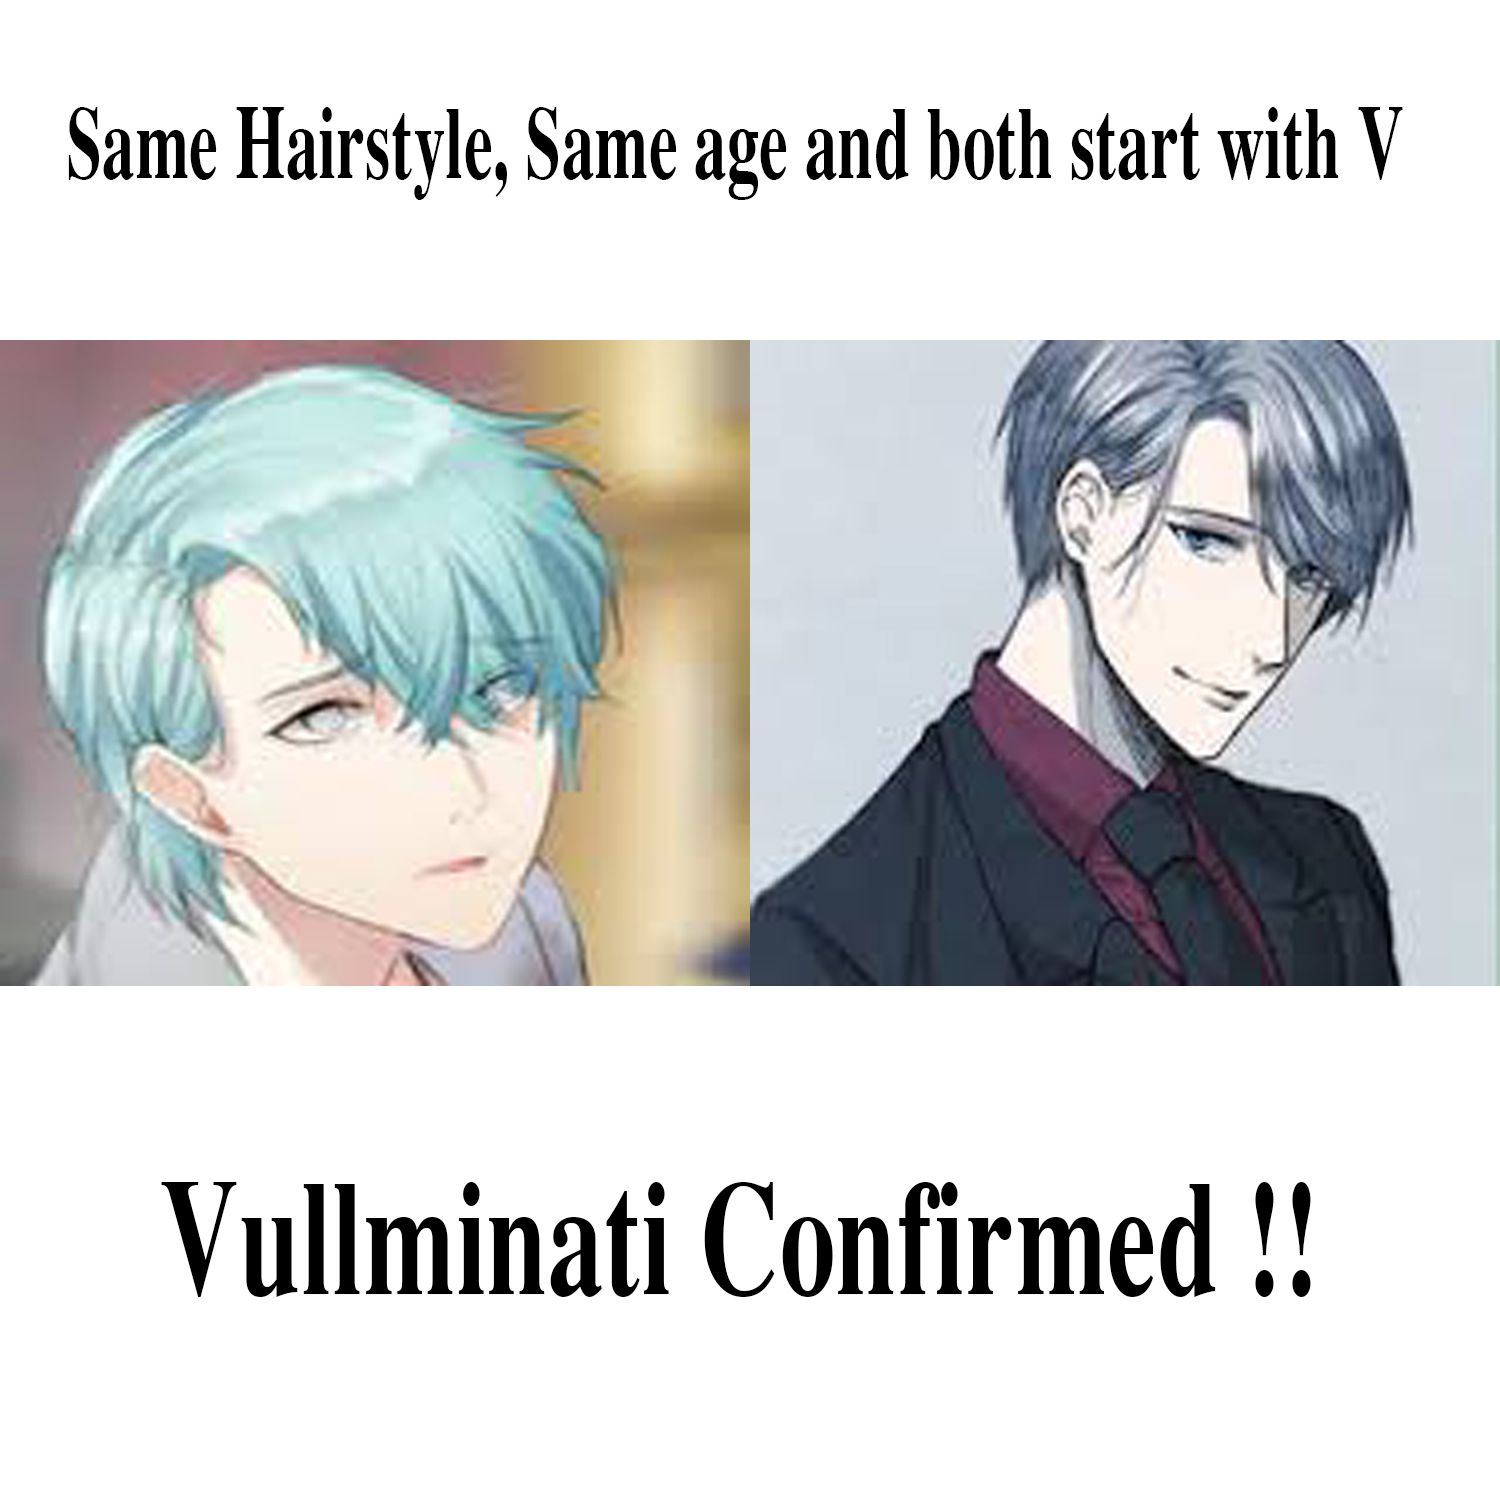 """My friend and I were discussing an anime she had told me about when we noticed the similarities between Victor from Yuri on ice and V from mystic messenger. What do you think is """"Vulliminati"""" confirmed?? #Mysticmessenger #Yurionice #Anime #Vullminati #V #Victor #Mystic #Messenger #Games #Otome"""